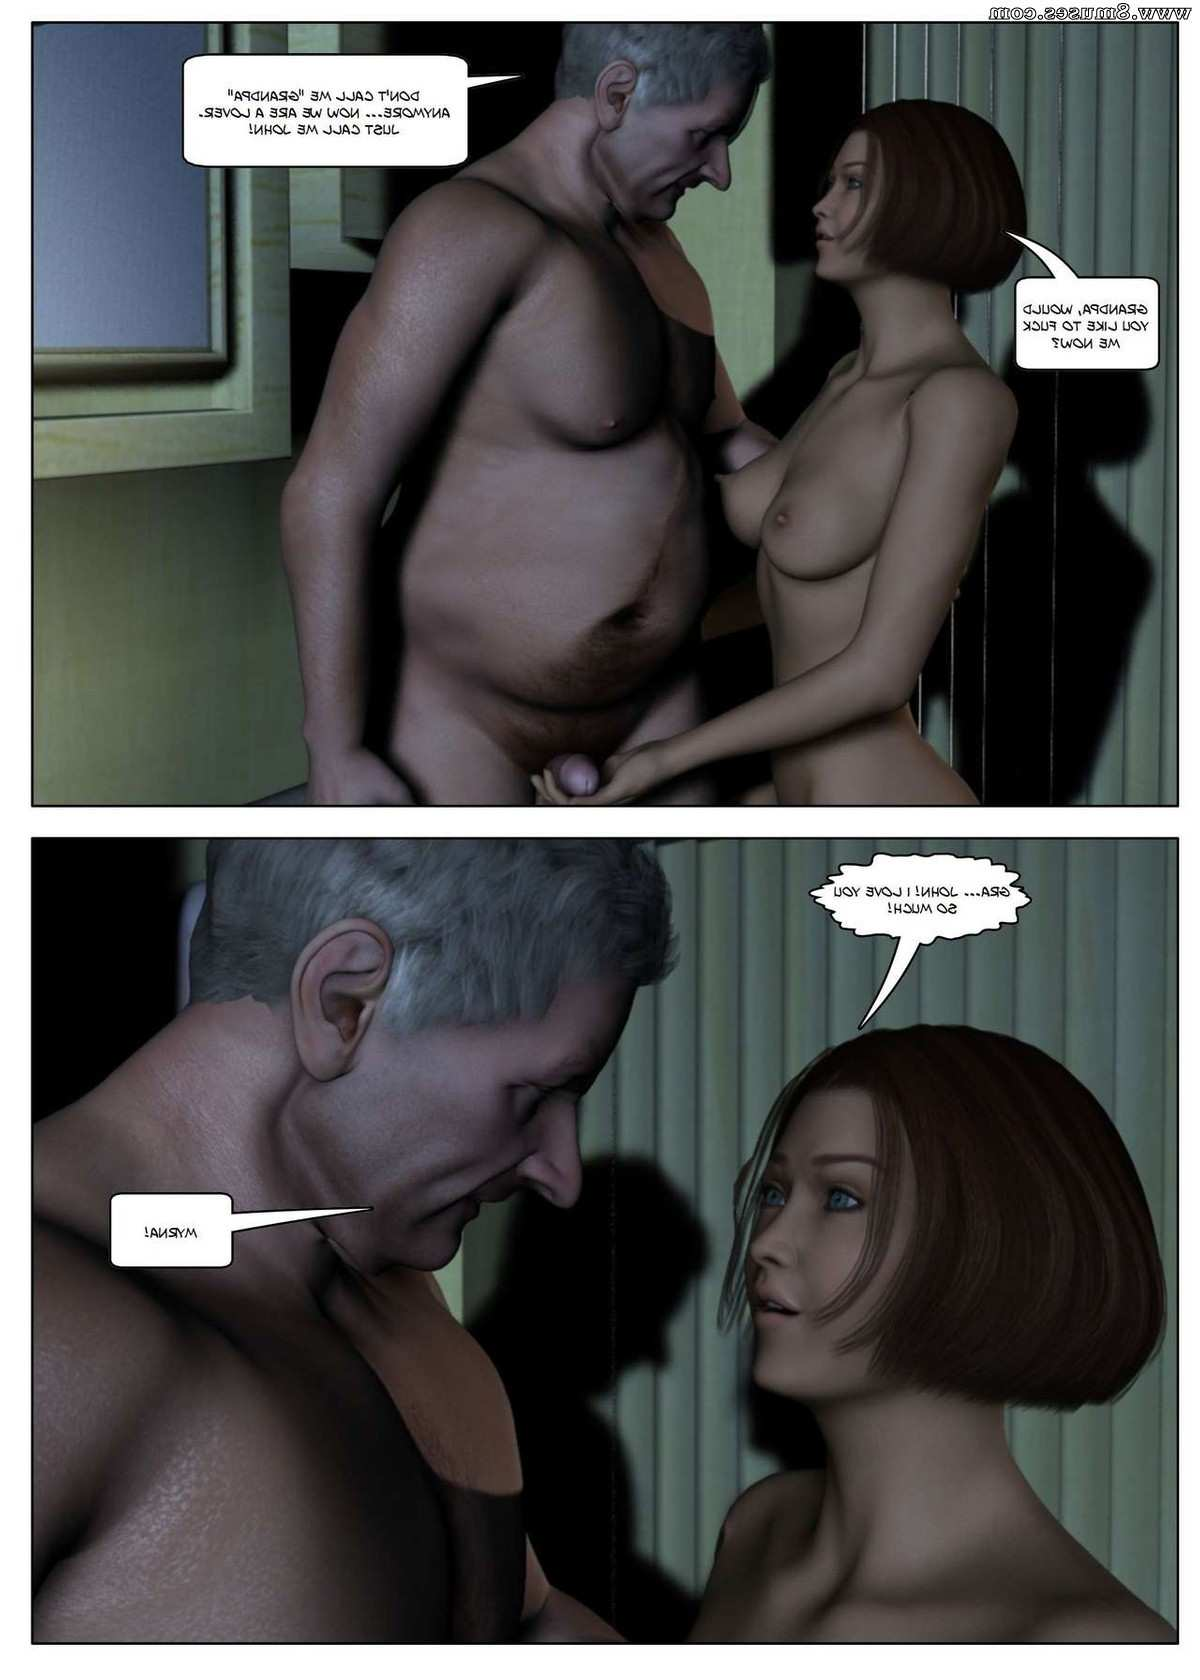 G9MP-Comics/Earth-Defence-Commando Earth_Defence_Commando__8muses_-_Sex_and_Porn_Comics_15.jpg